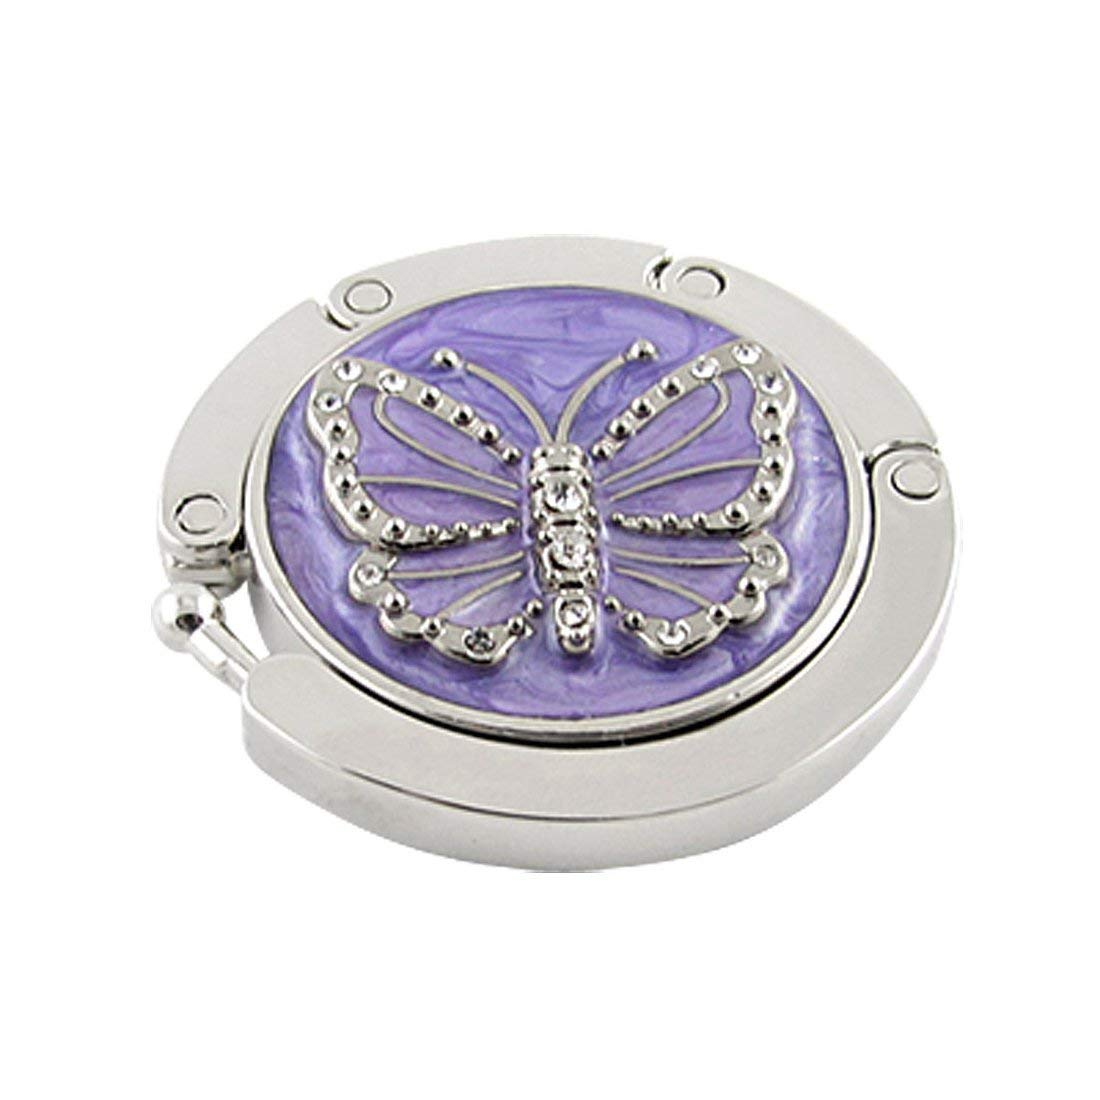 Premium Quality Portability Multifunction Purple Butterfly Purse Handbag Hook Folding Hanger by Yevison